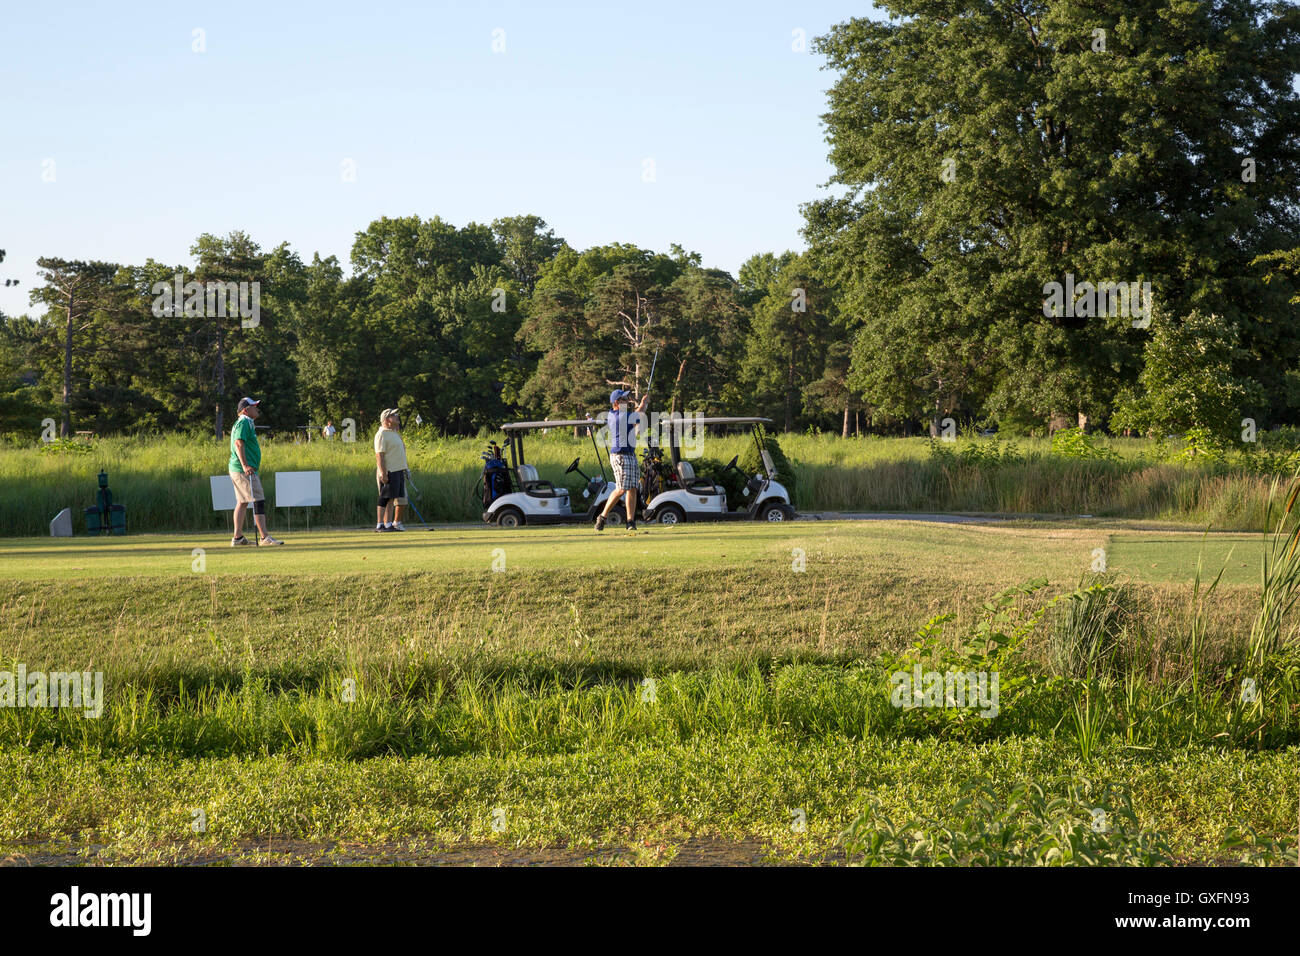 Men watching as another man tees off on golf course in park. late day blue sky. - Stock Image